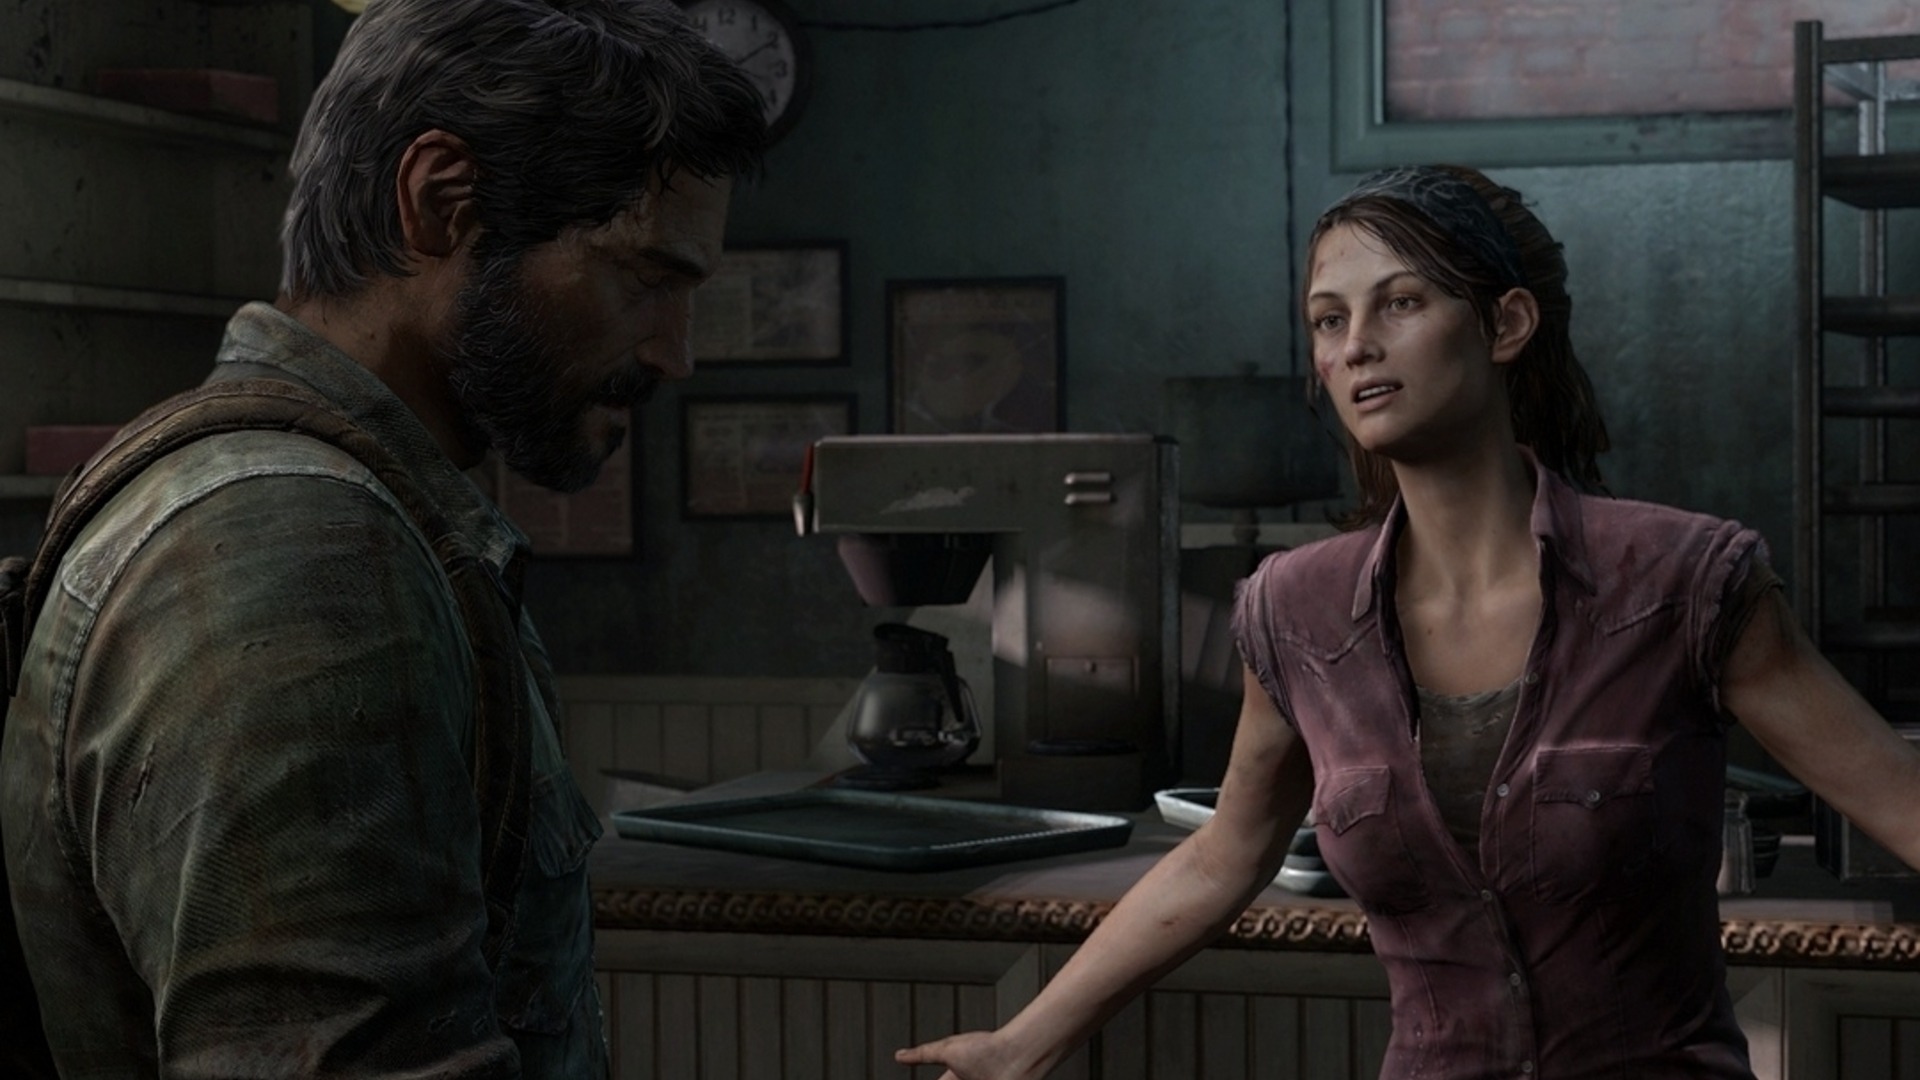 The Last of Us director explains original ending